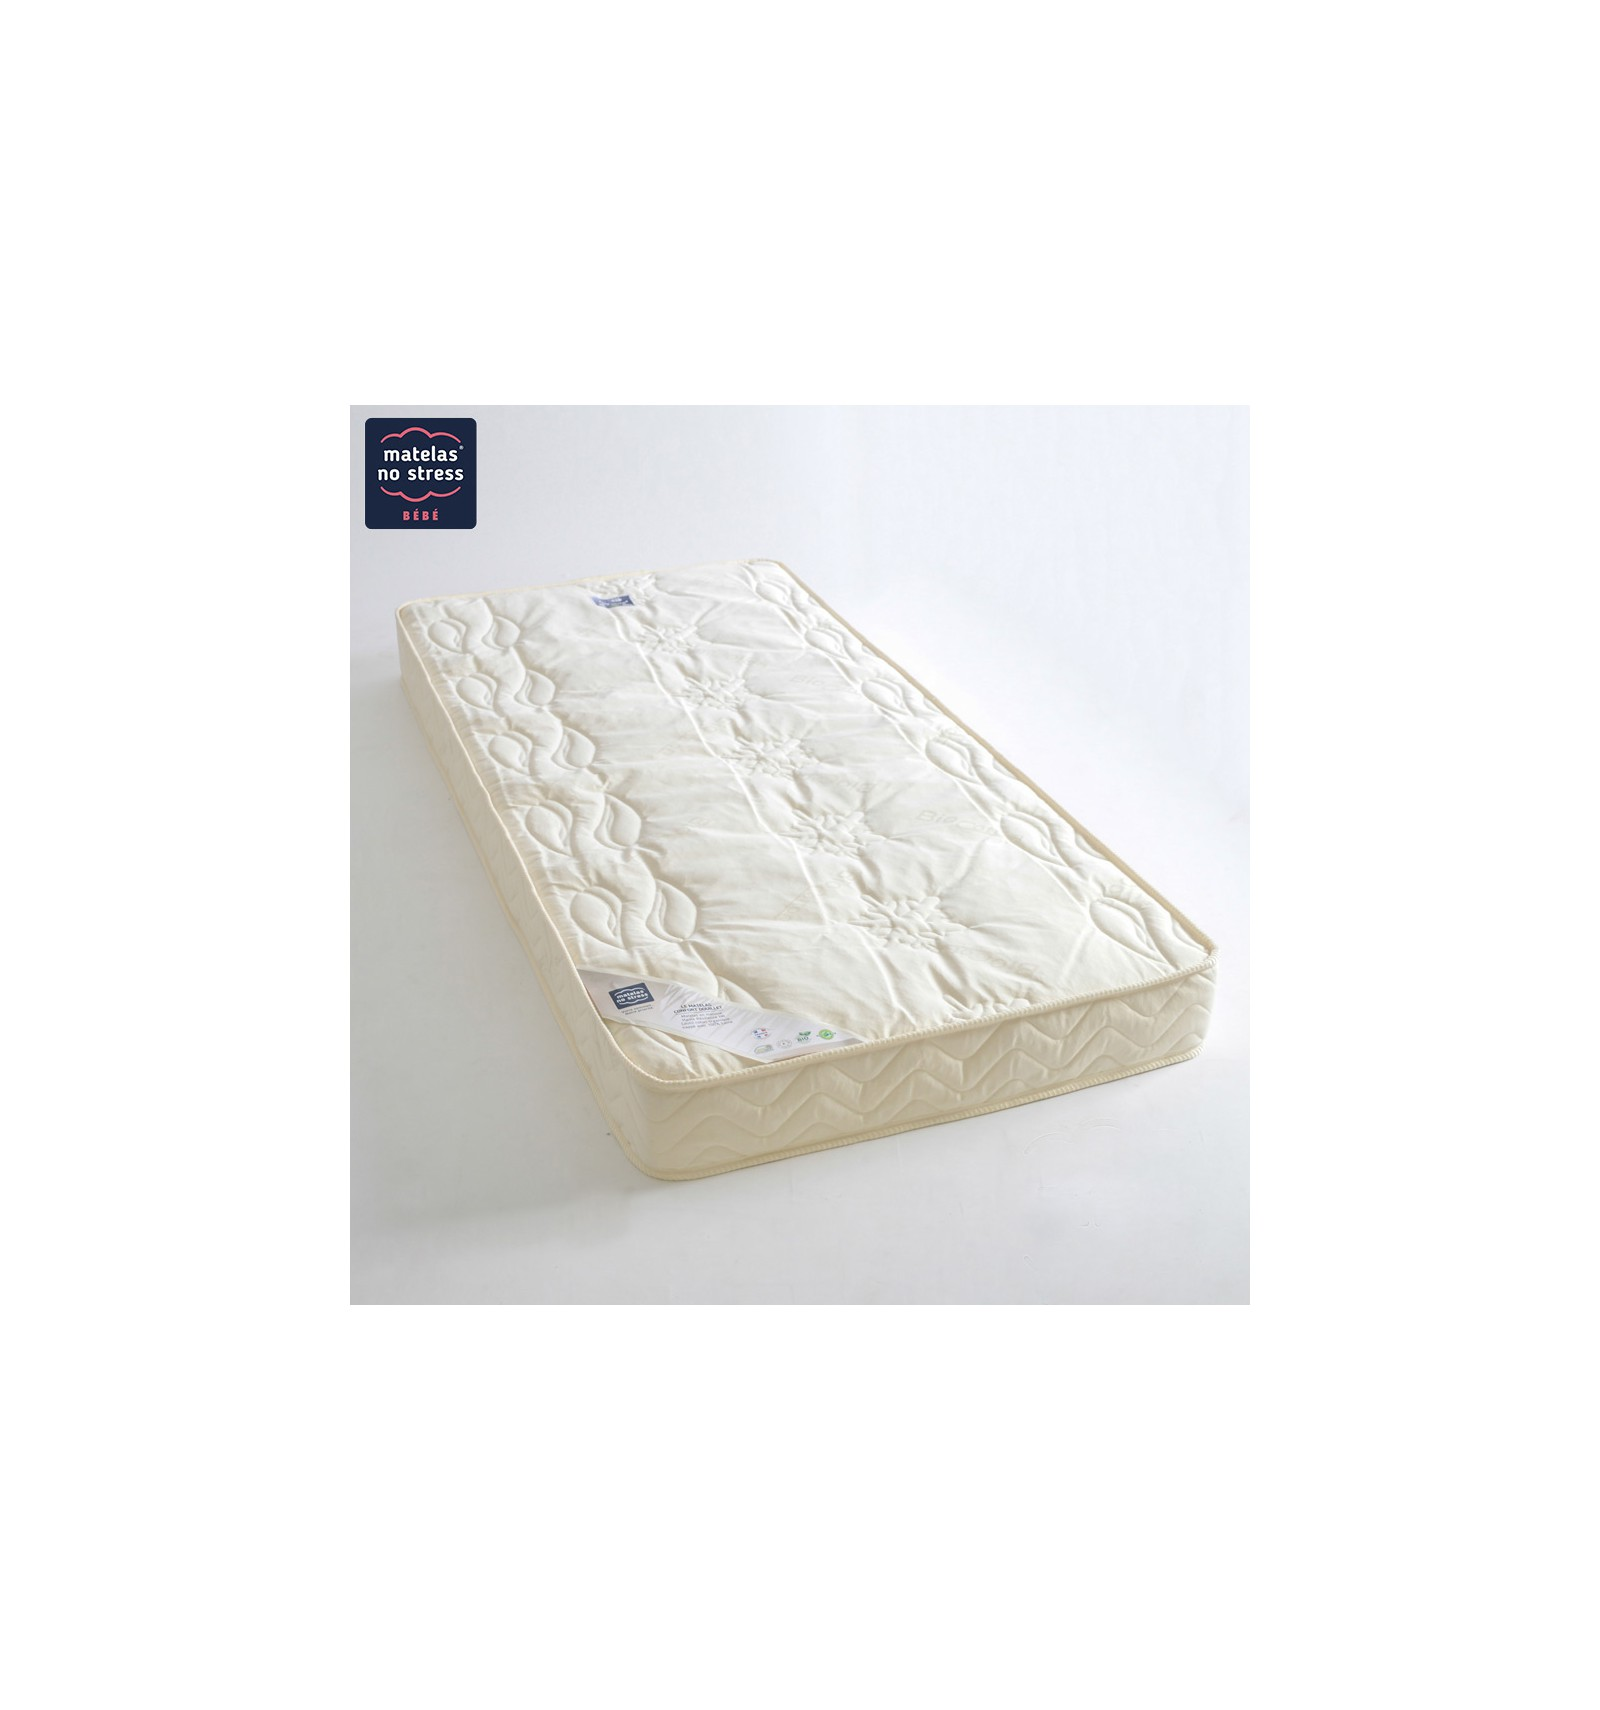 matelas 90x140 double face enveloppe laine bio couffin matelas. Black Bedroom Furniture Sets. Home Design Ideas